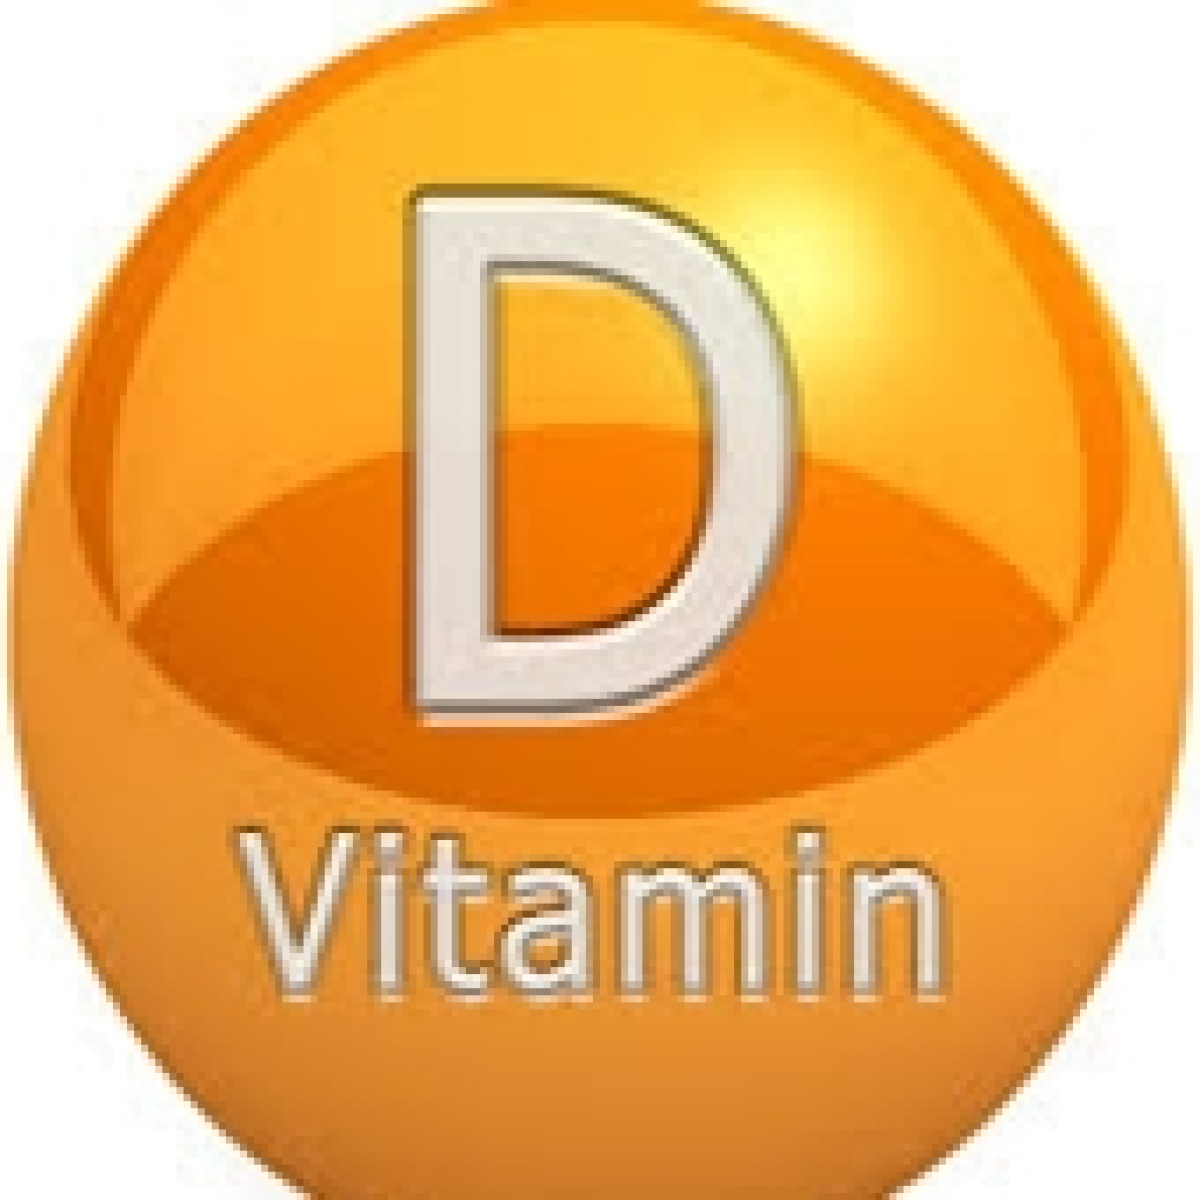 Lack of Vitamin D is a bad sign for muscle health